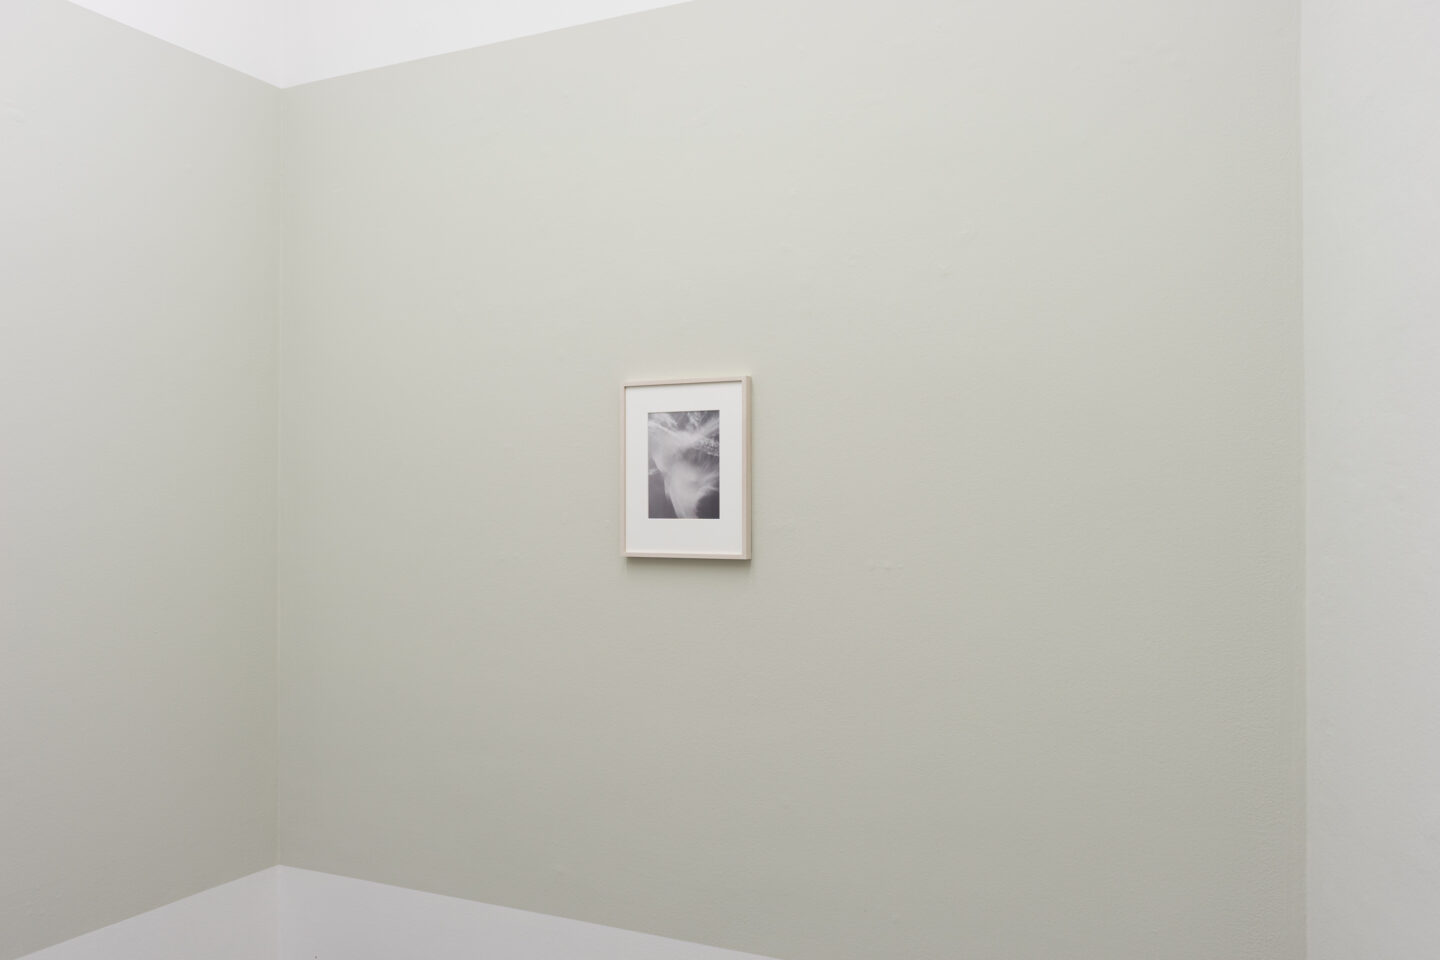 Exhibition View Jitka Hanzlová Soloshow at Mai 36 Galerie, Zurich, 2020 / Courtesy: the artist and Mai 36 Galerie